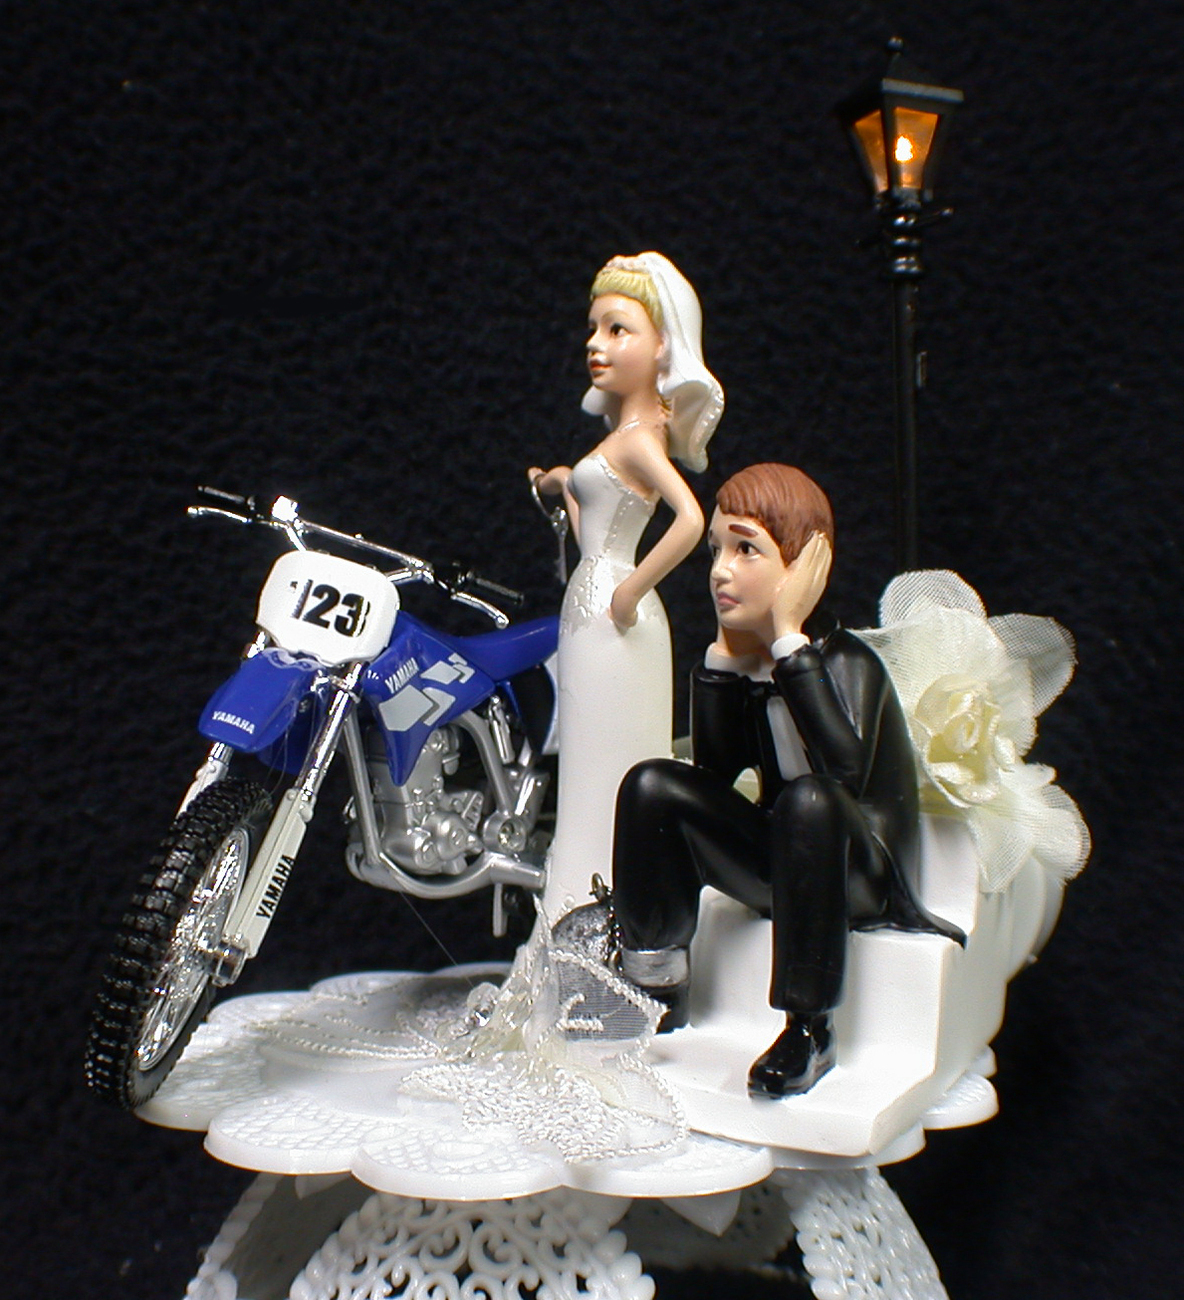 dirt bike wedding cake toppers yamaha dirt motorcycle bike blue wedding cake topper 2 13535